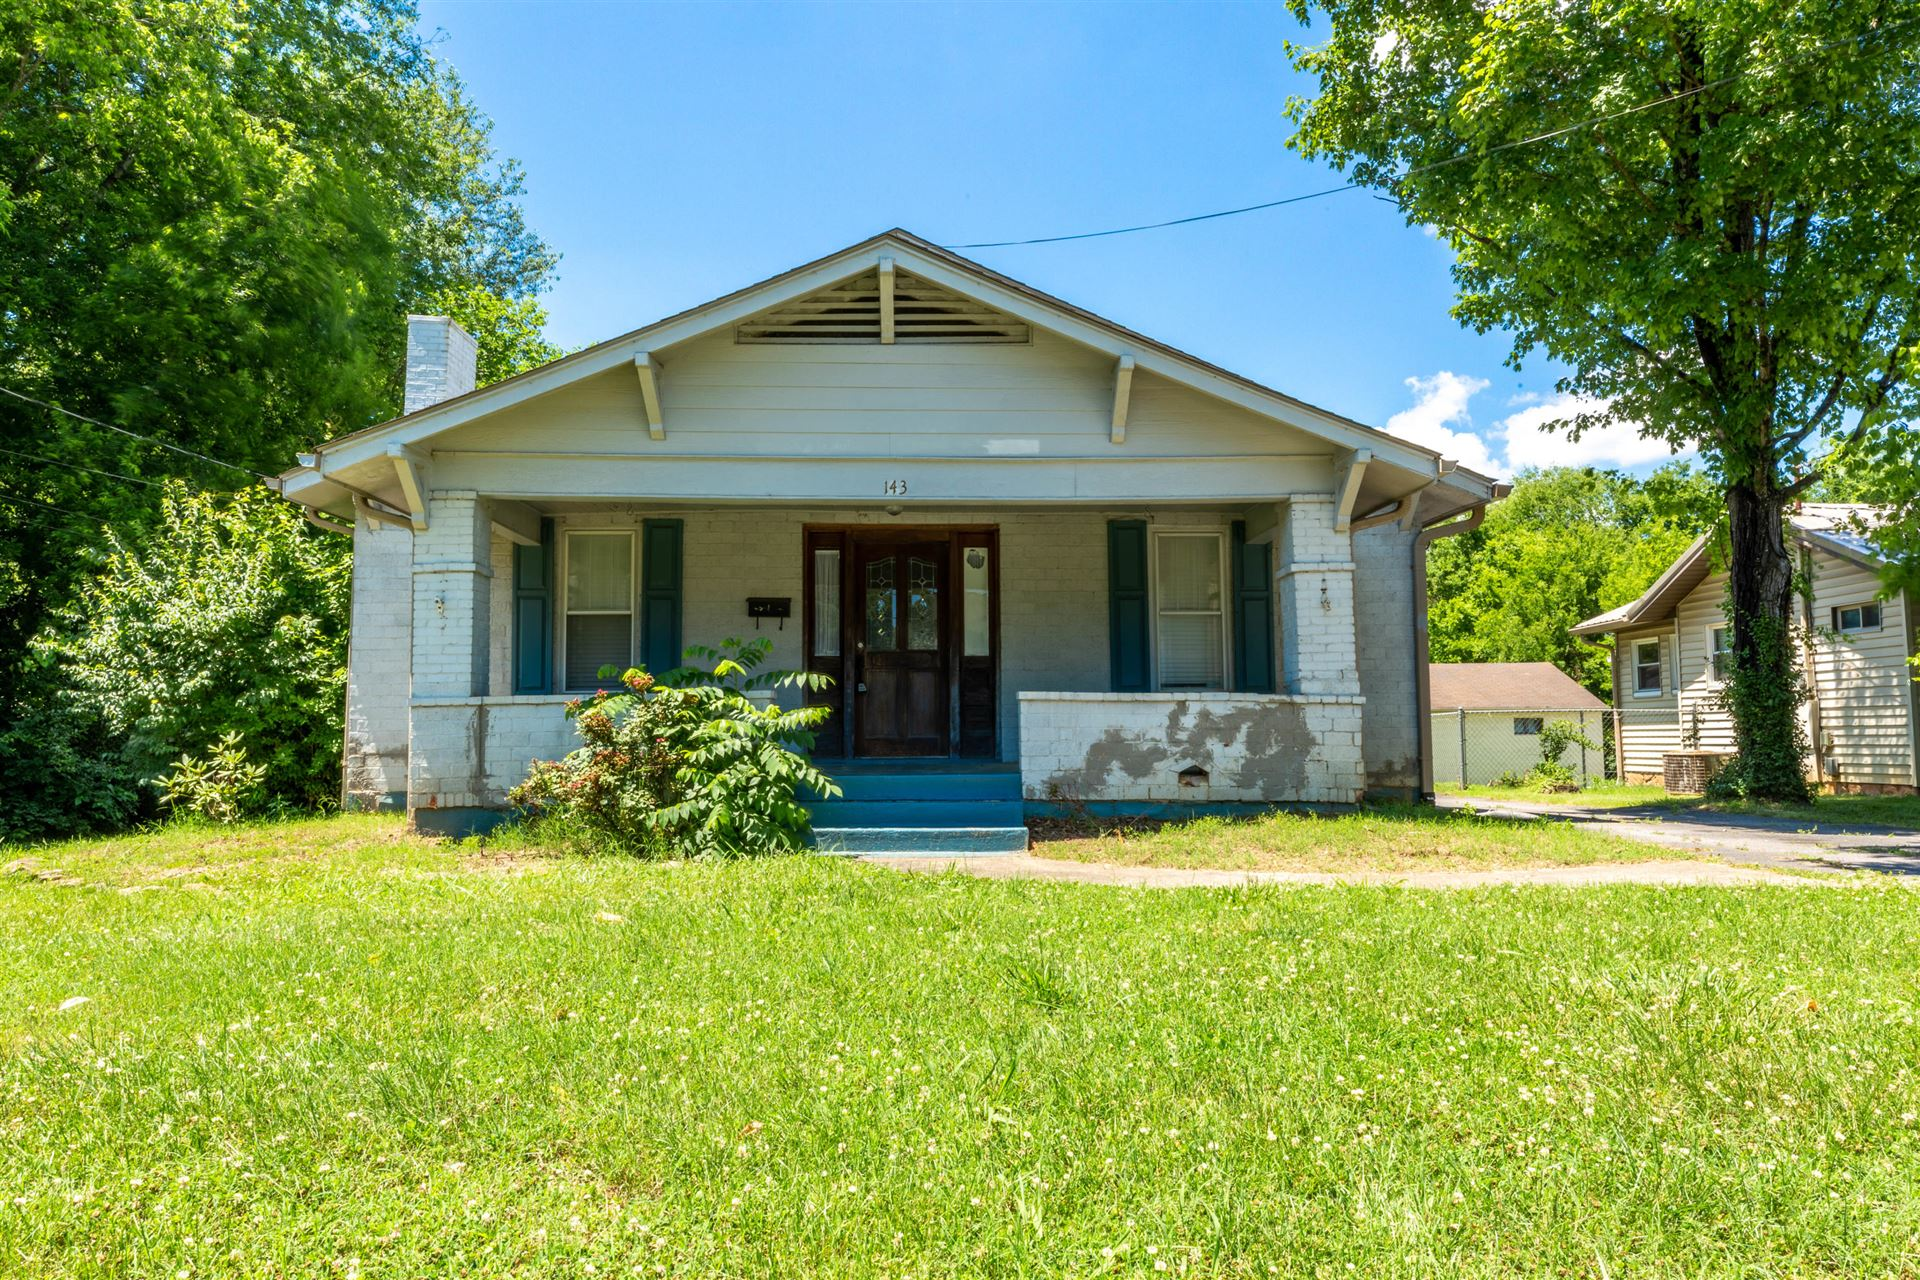 Photo of 143 Hillcrest Drive, Knoxville, TN 37918 (MLS # 1156944)